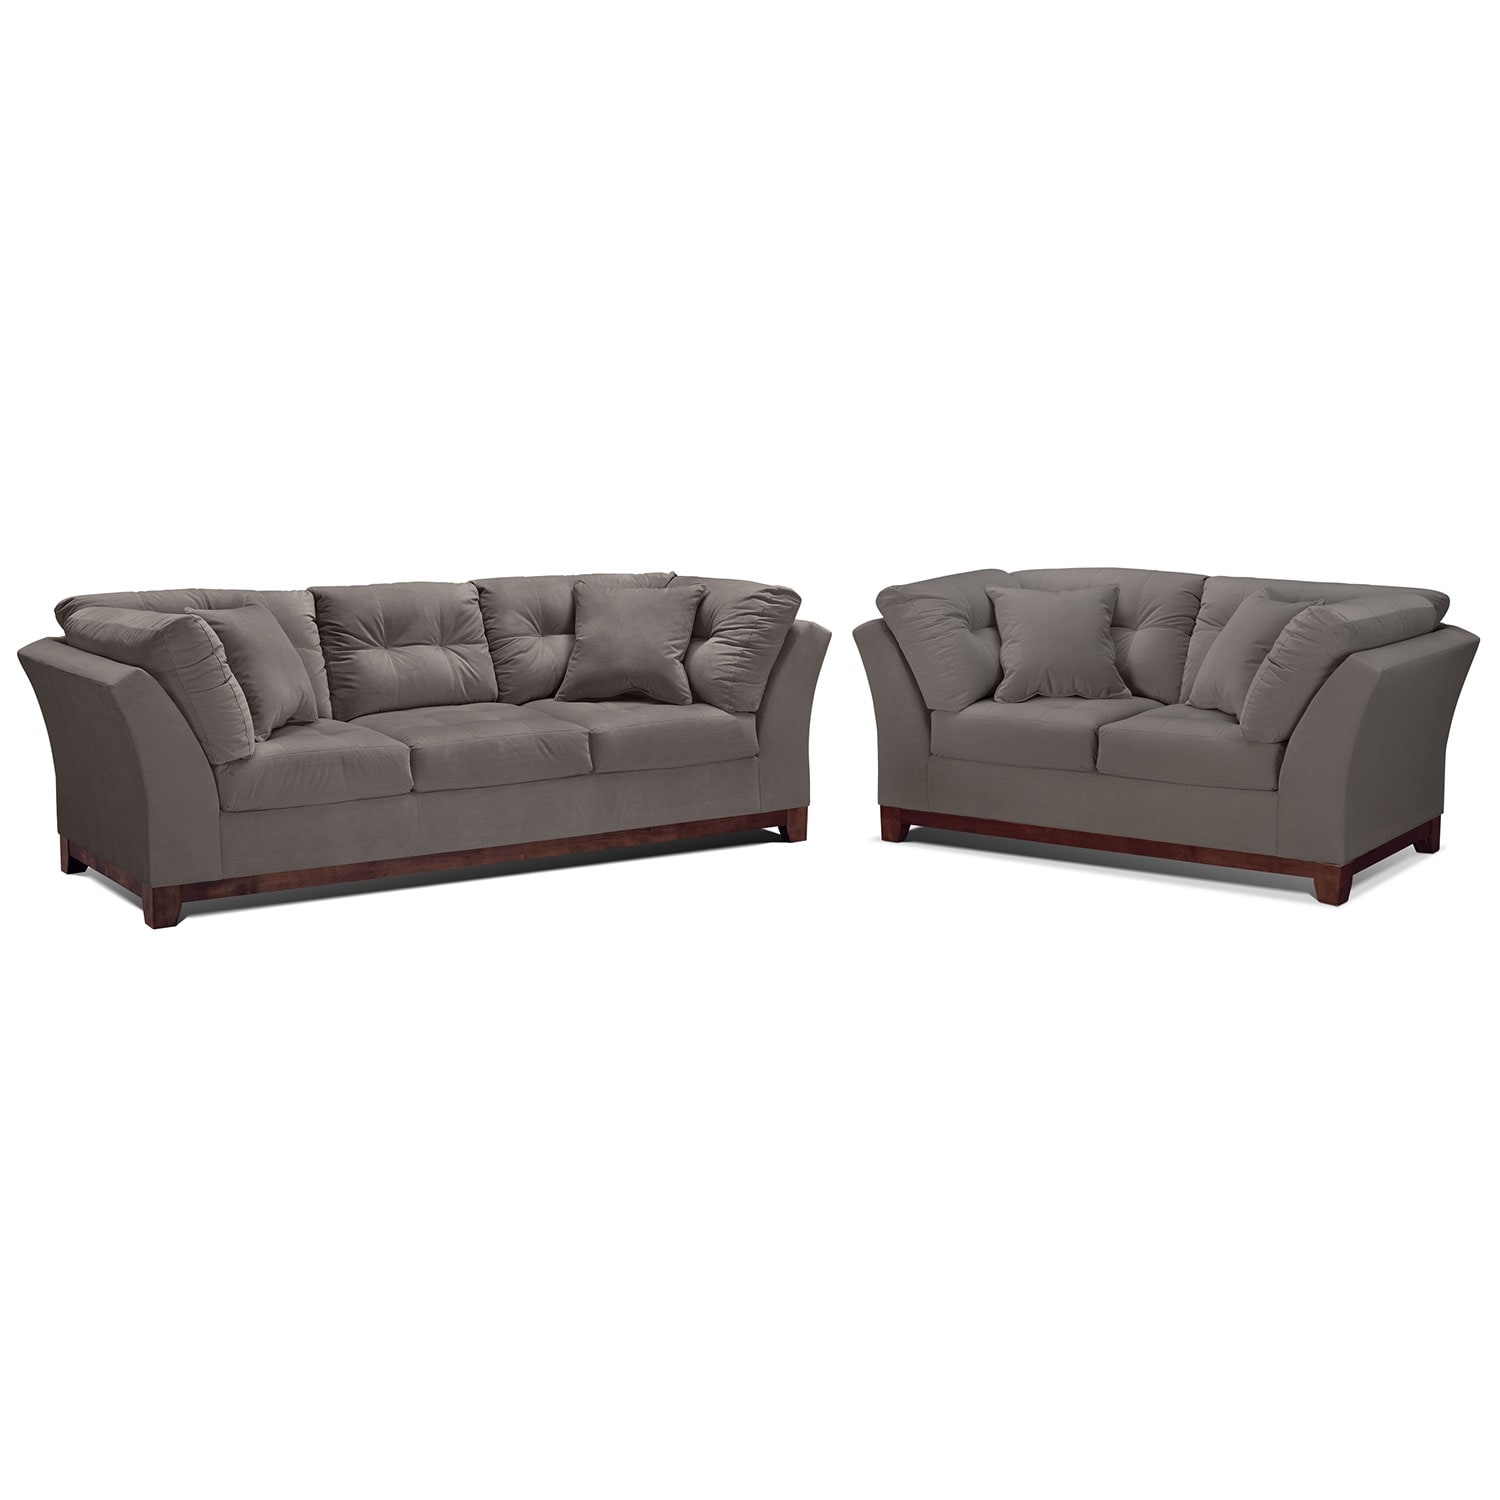 Sebring Sofa and Loveseat Set - Gray